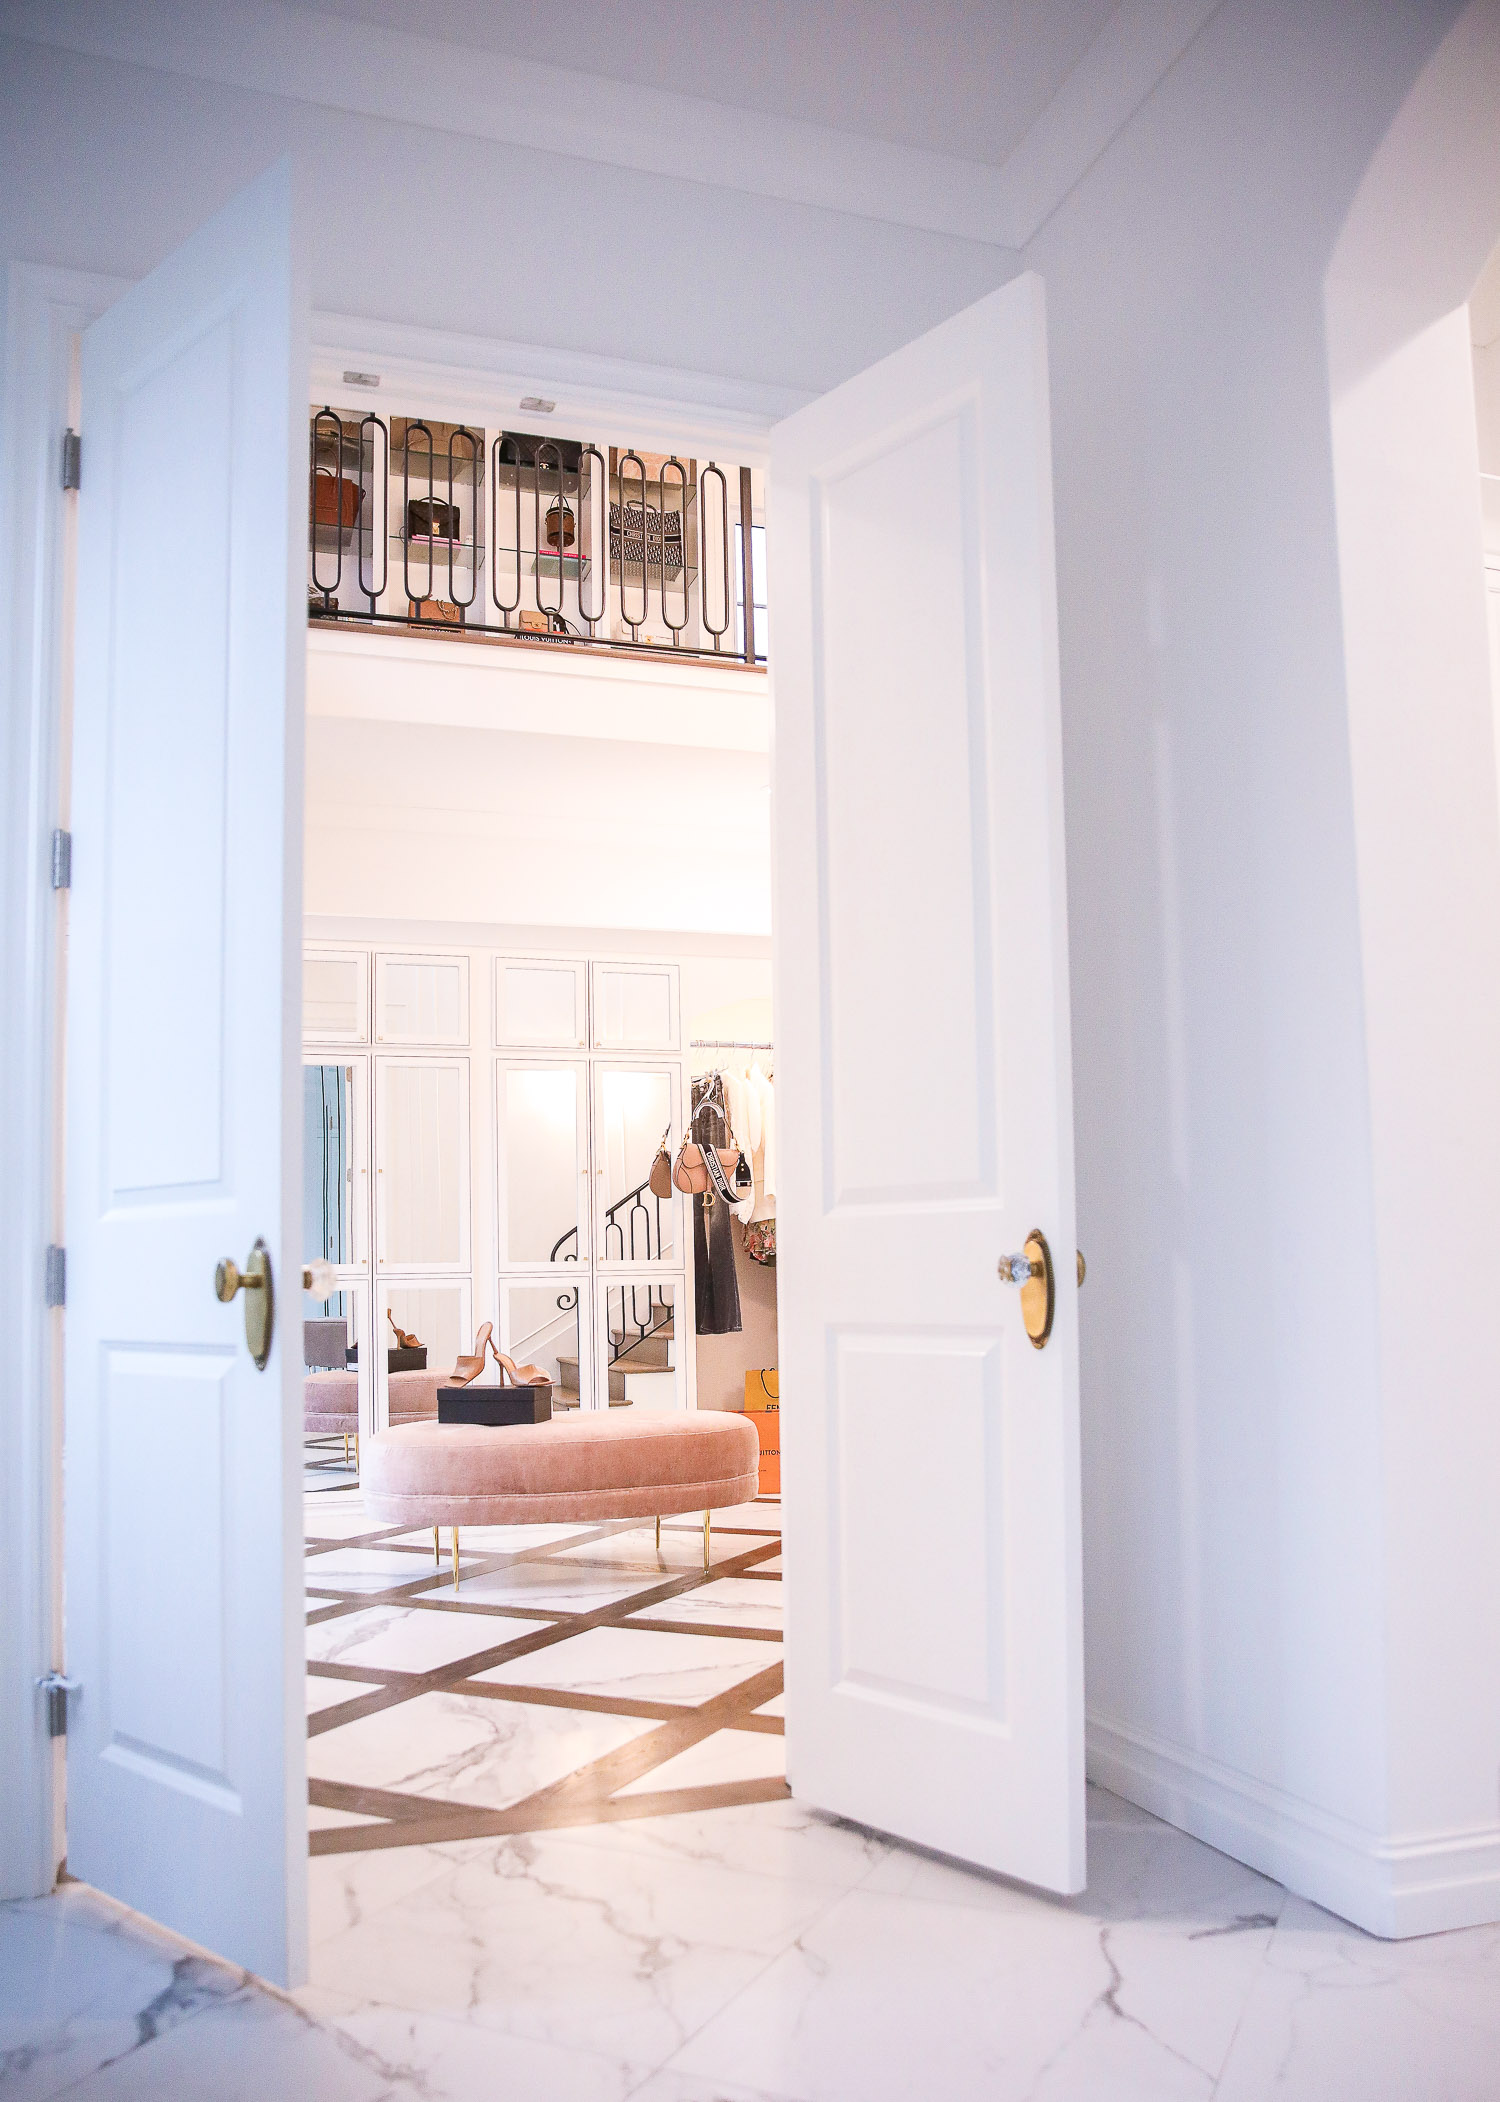 Nighttime Routine by popular US beauty blog, The Sweetest Thing: image of walk-in closet with a pink velvet ottoman and designer purse display.